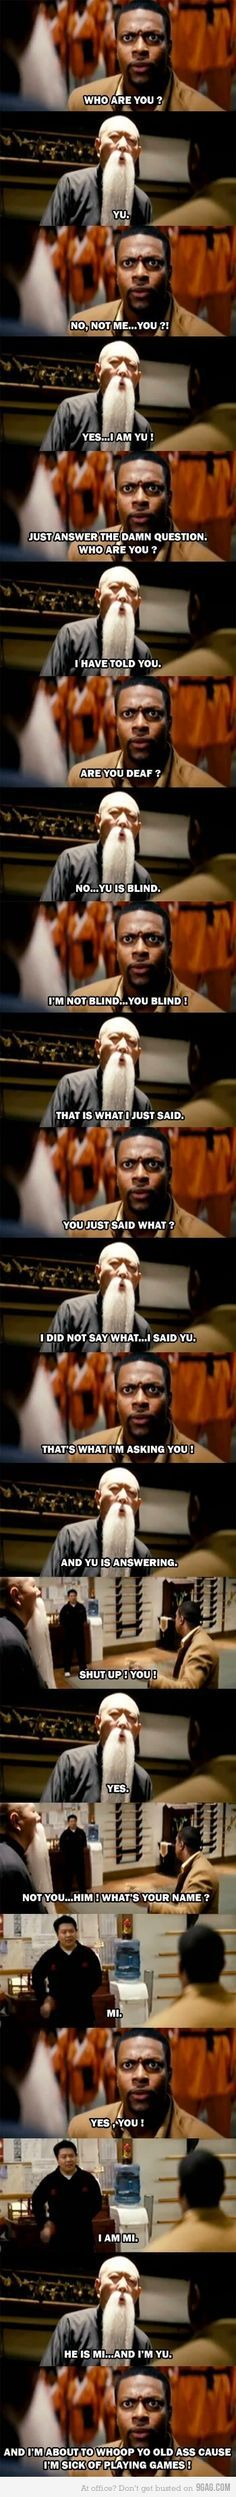 This is from the movie Rush Hour... you should watch it, its HILARIOUS!